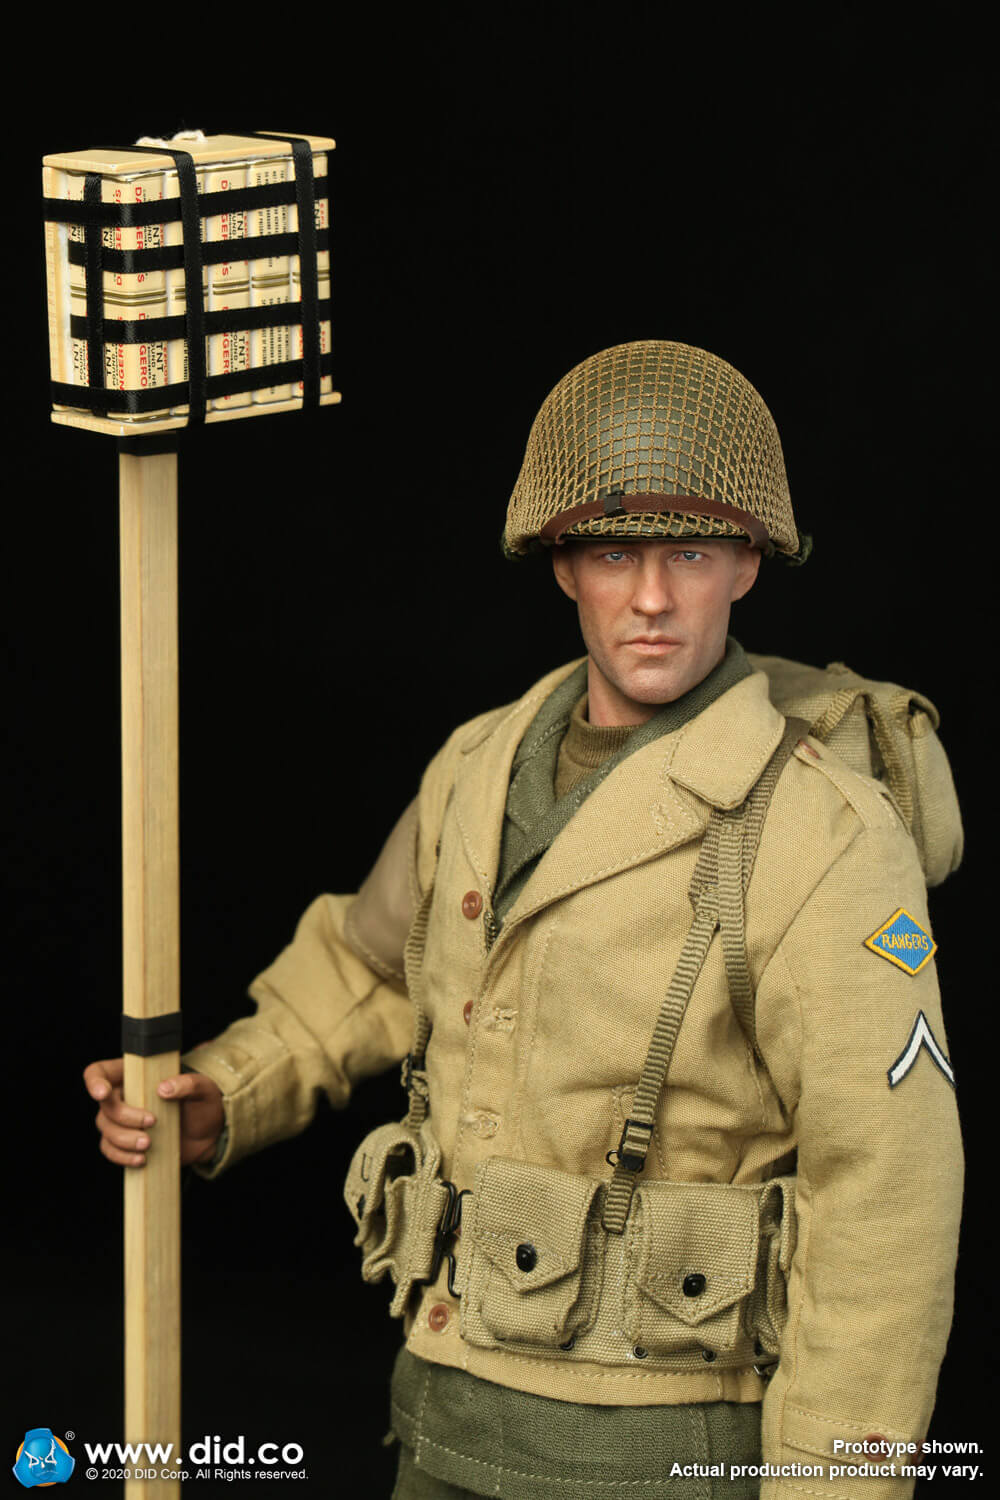 male - NEW PRODUCT: DiD: A80141 WWII US 2nd Ranger Battalion Private First Class Reiben 1/6 scale figure Us-2nd26